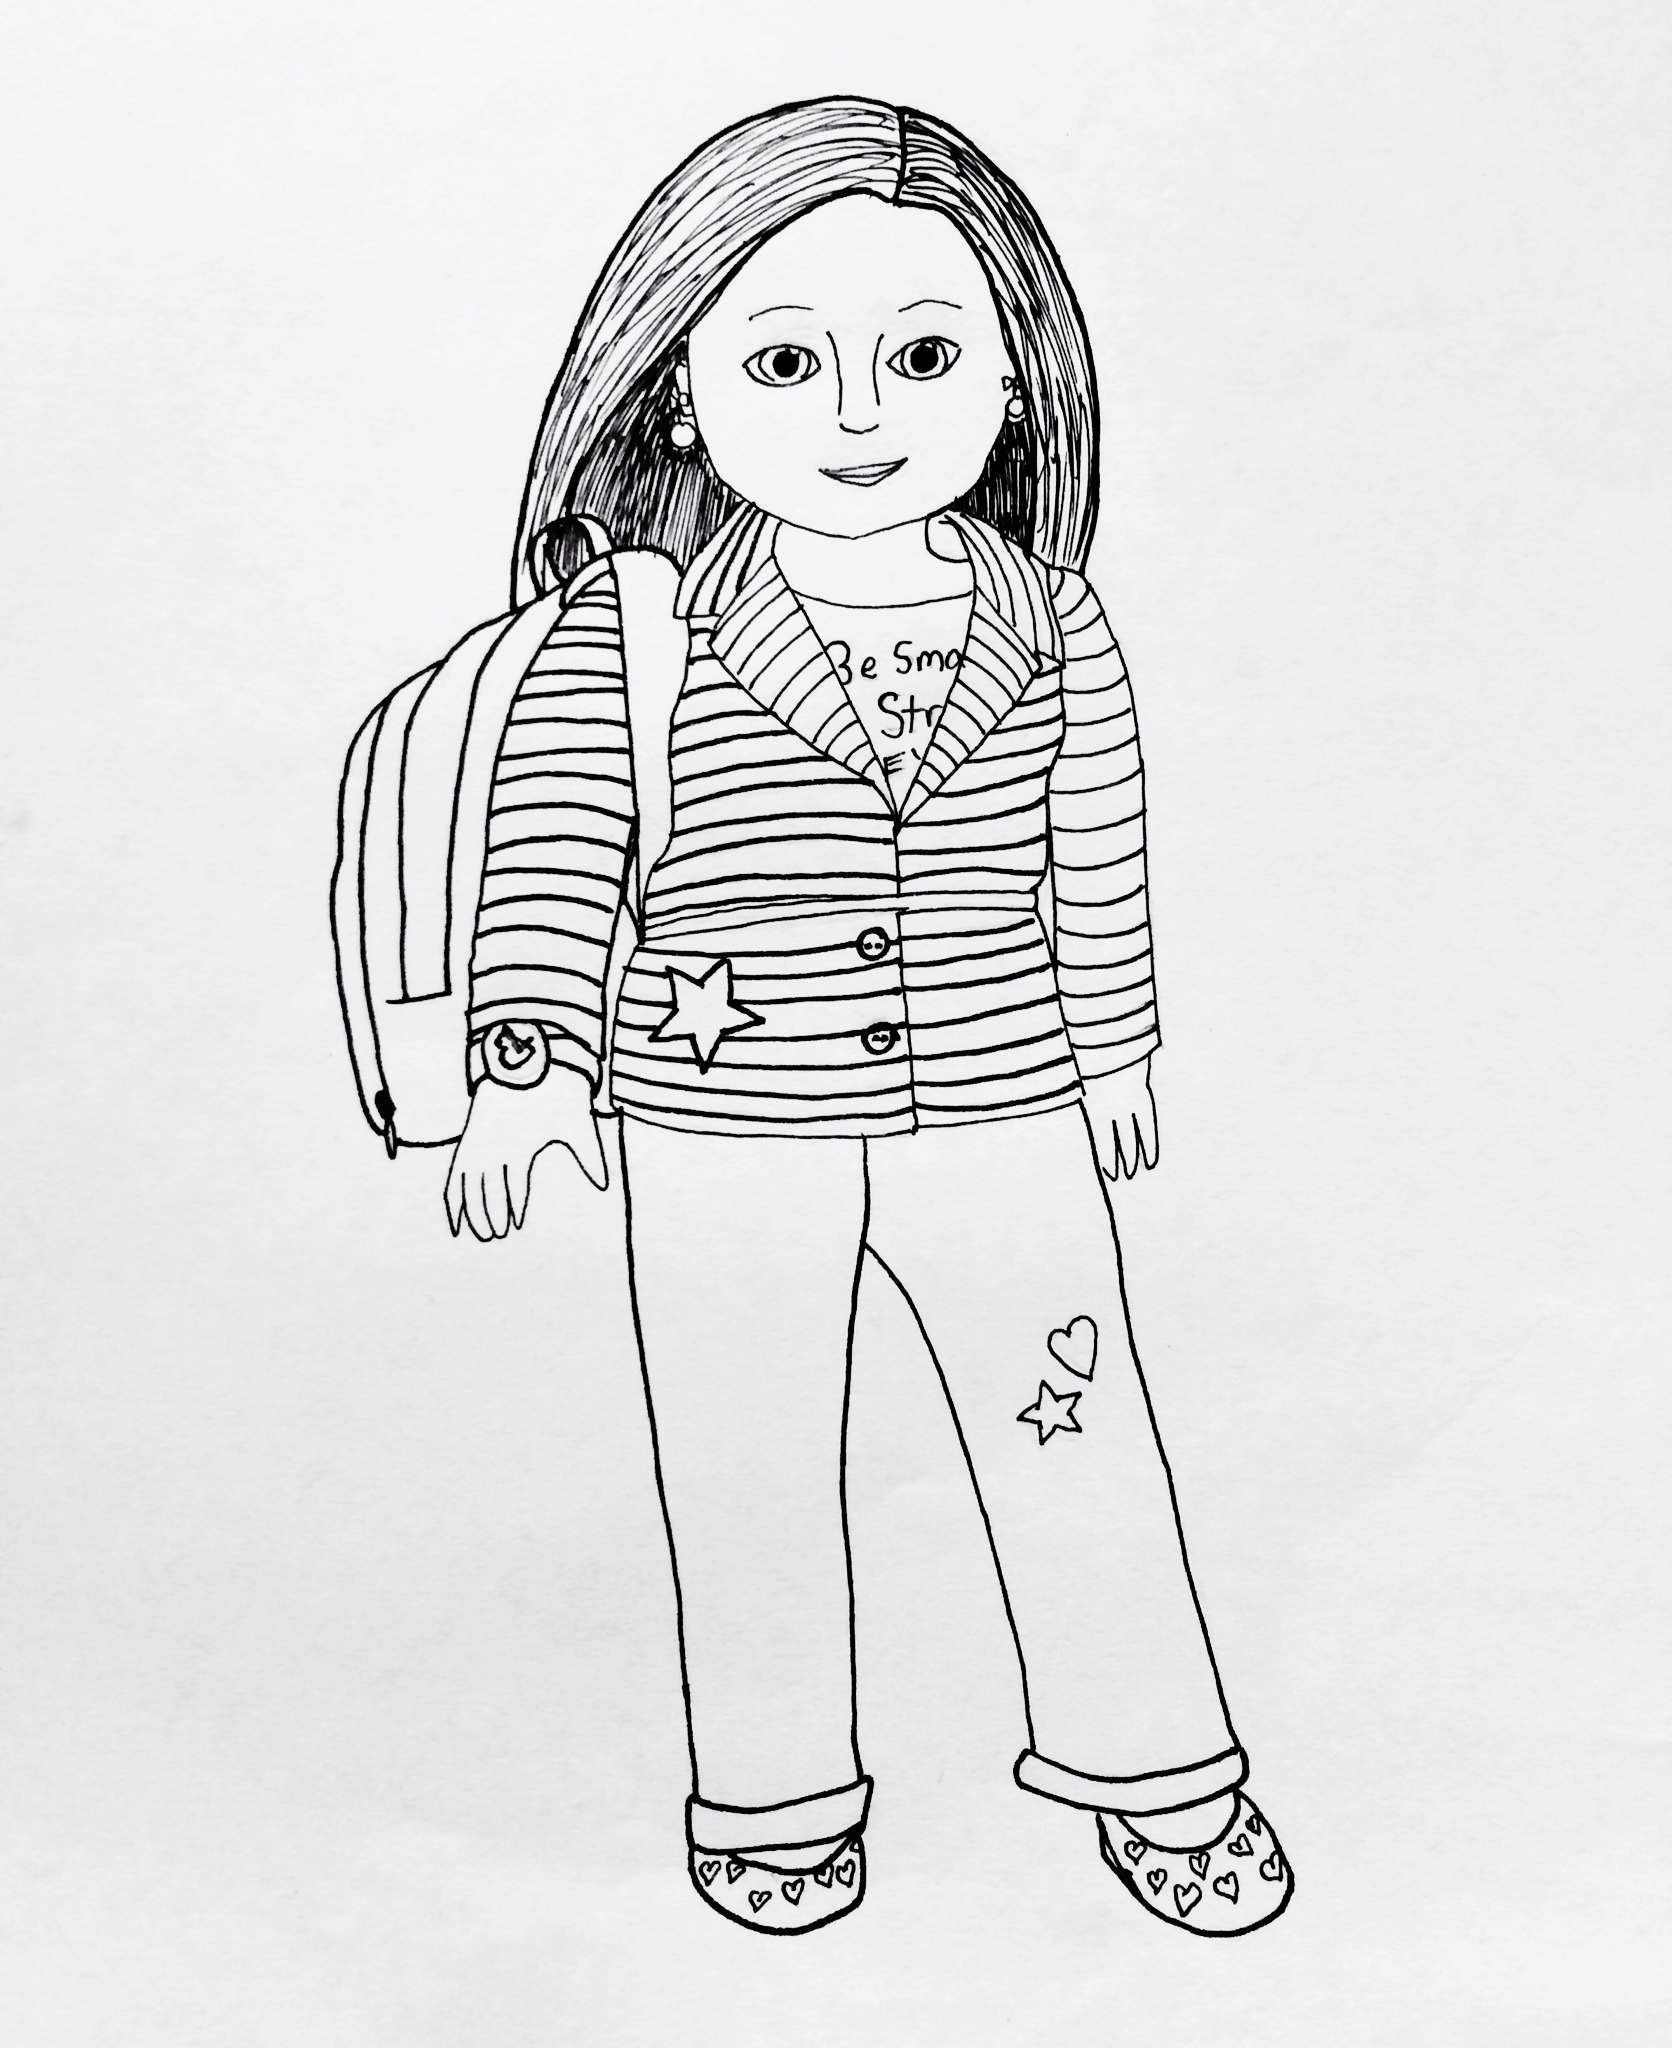 j american girl coloring pages - photo #12